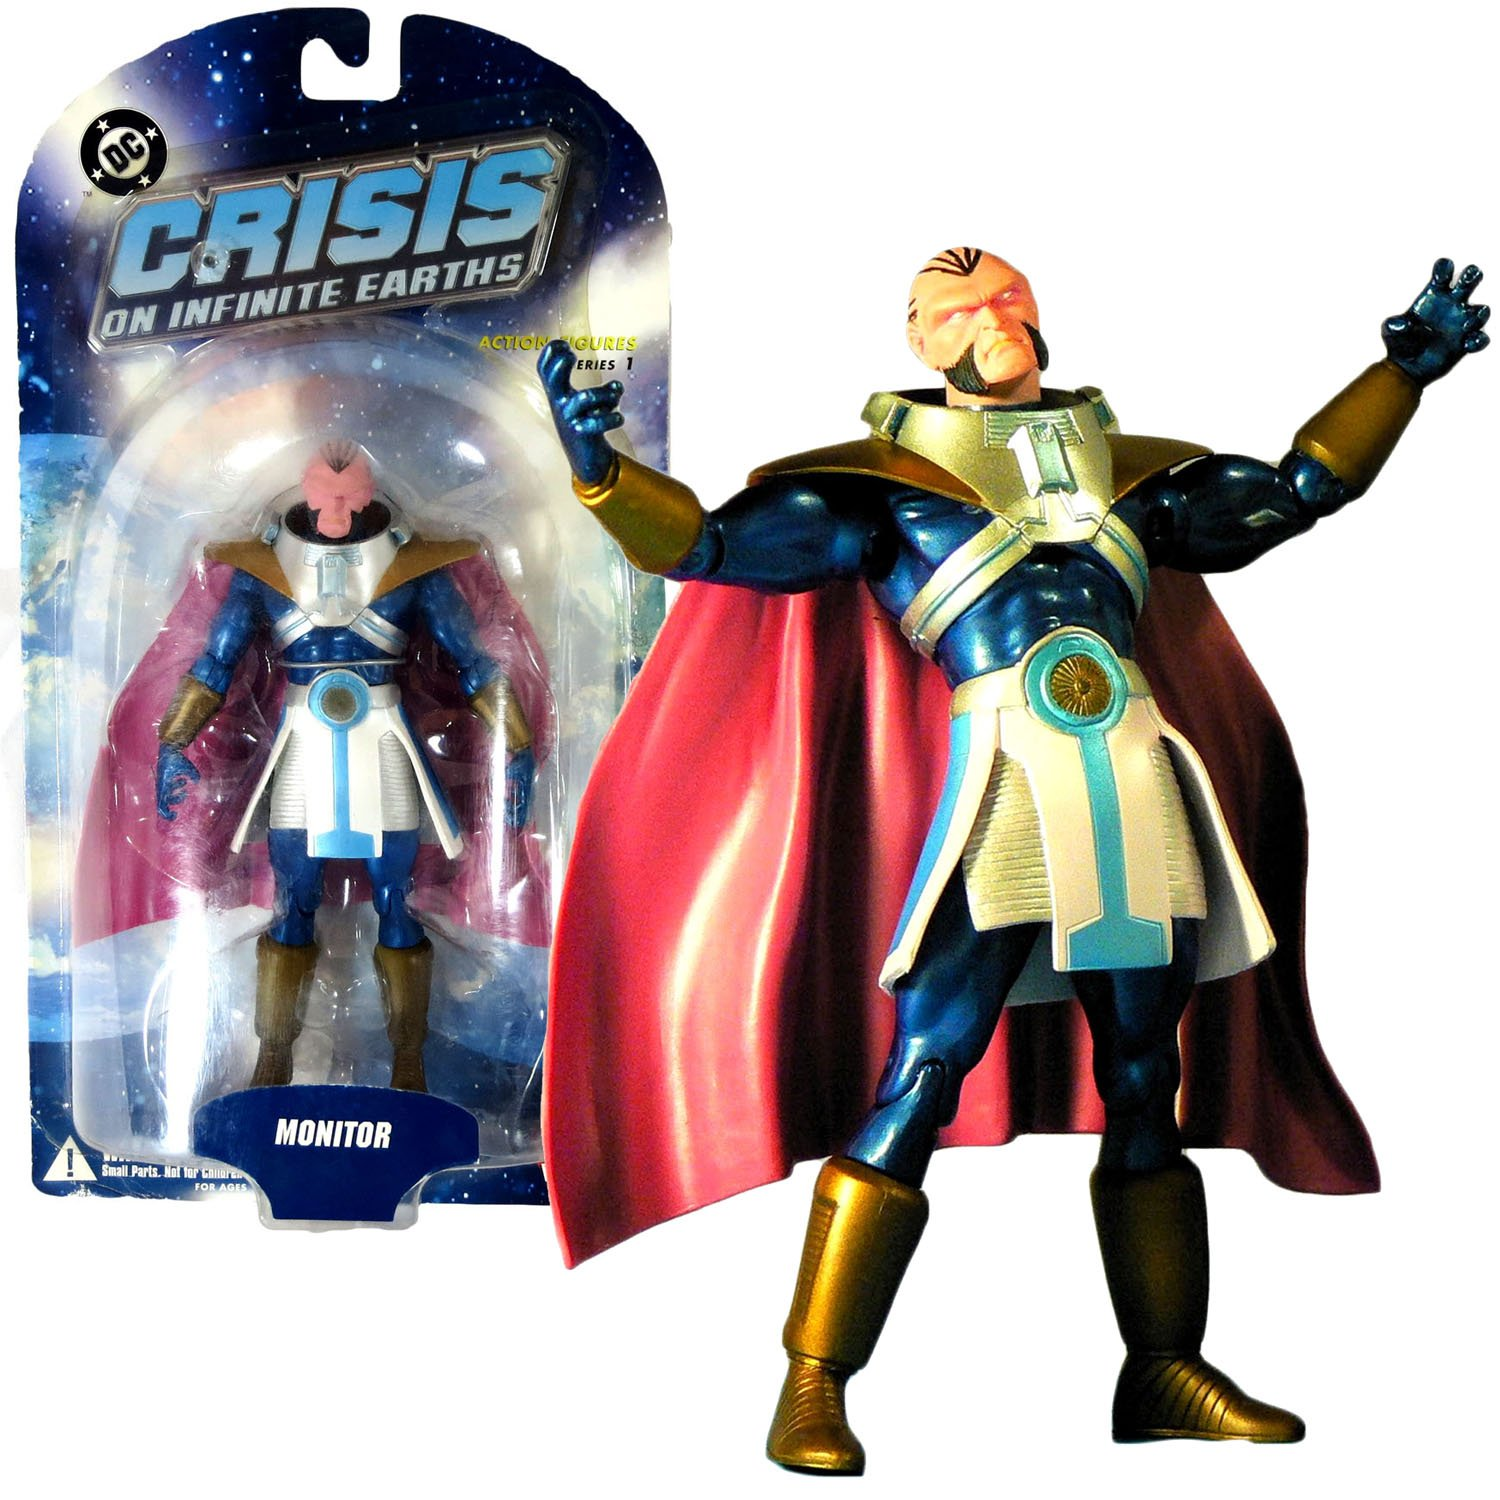 DC Direct Year 2006 Series 1 DC Comics Crisis on Infinite Earths 7 Inch Tall Action Figure - MONITOR with Display Base B0116QC3DI